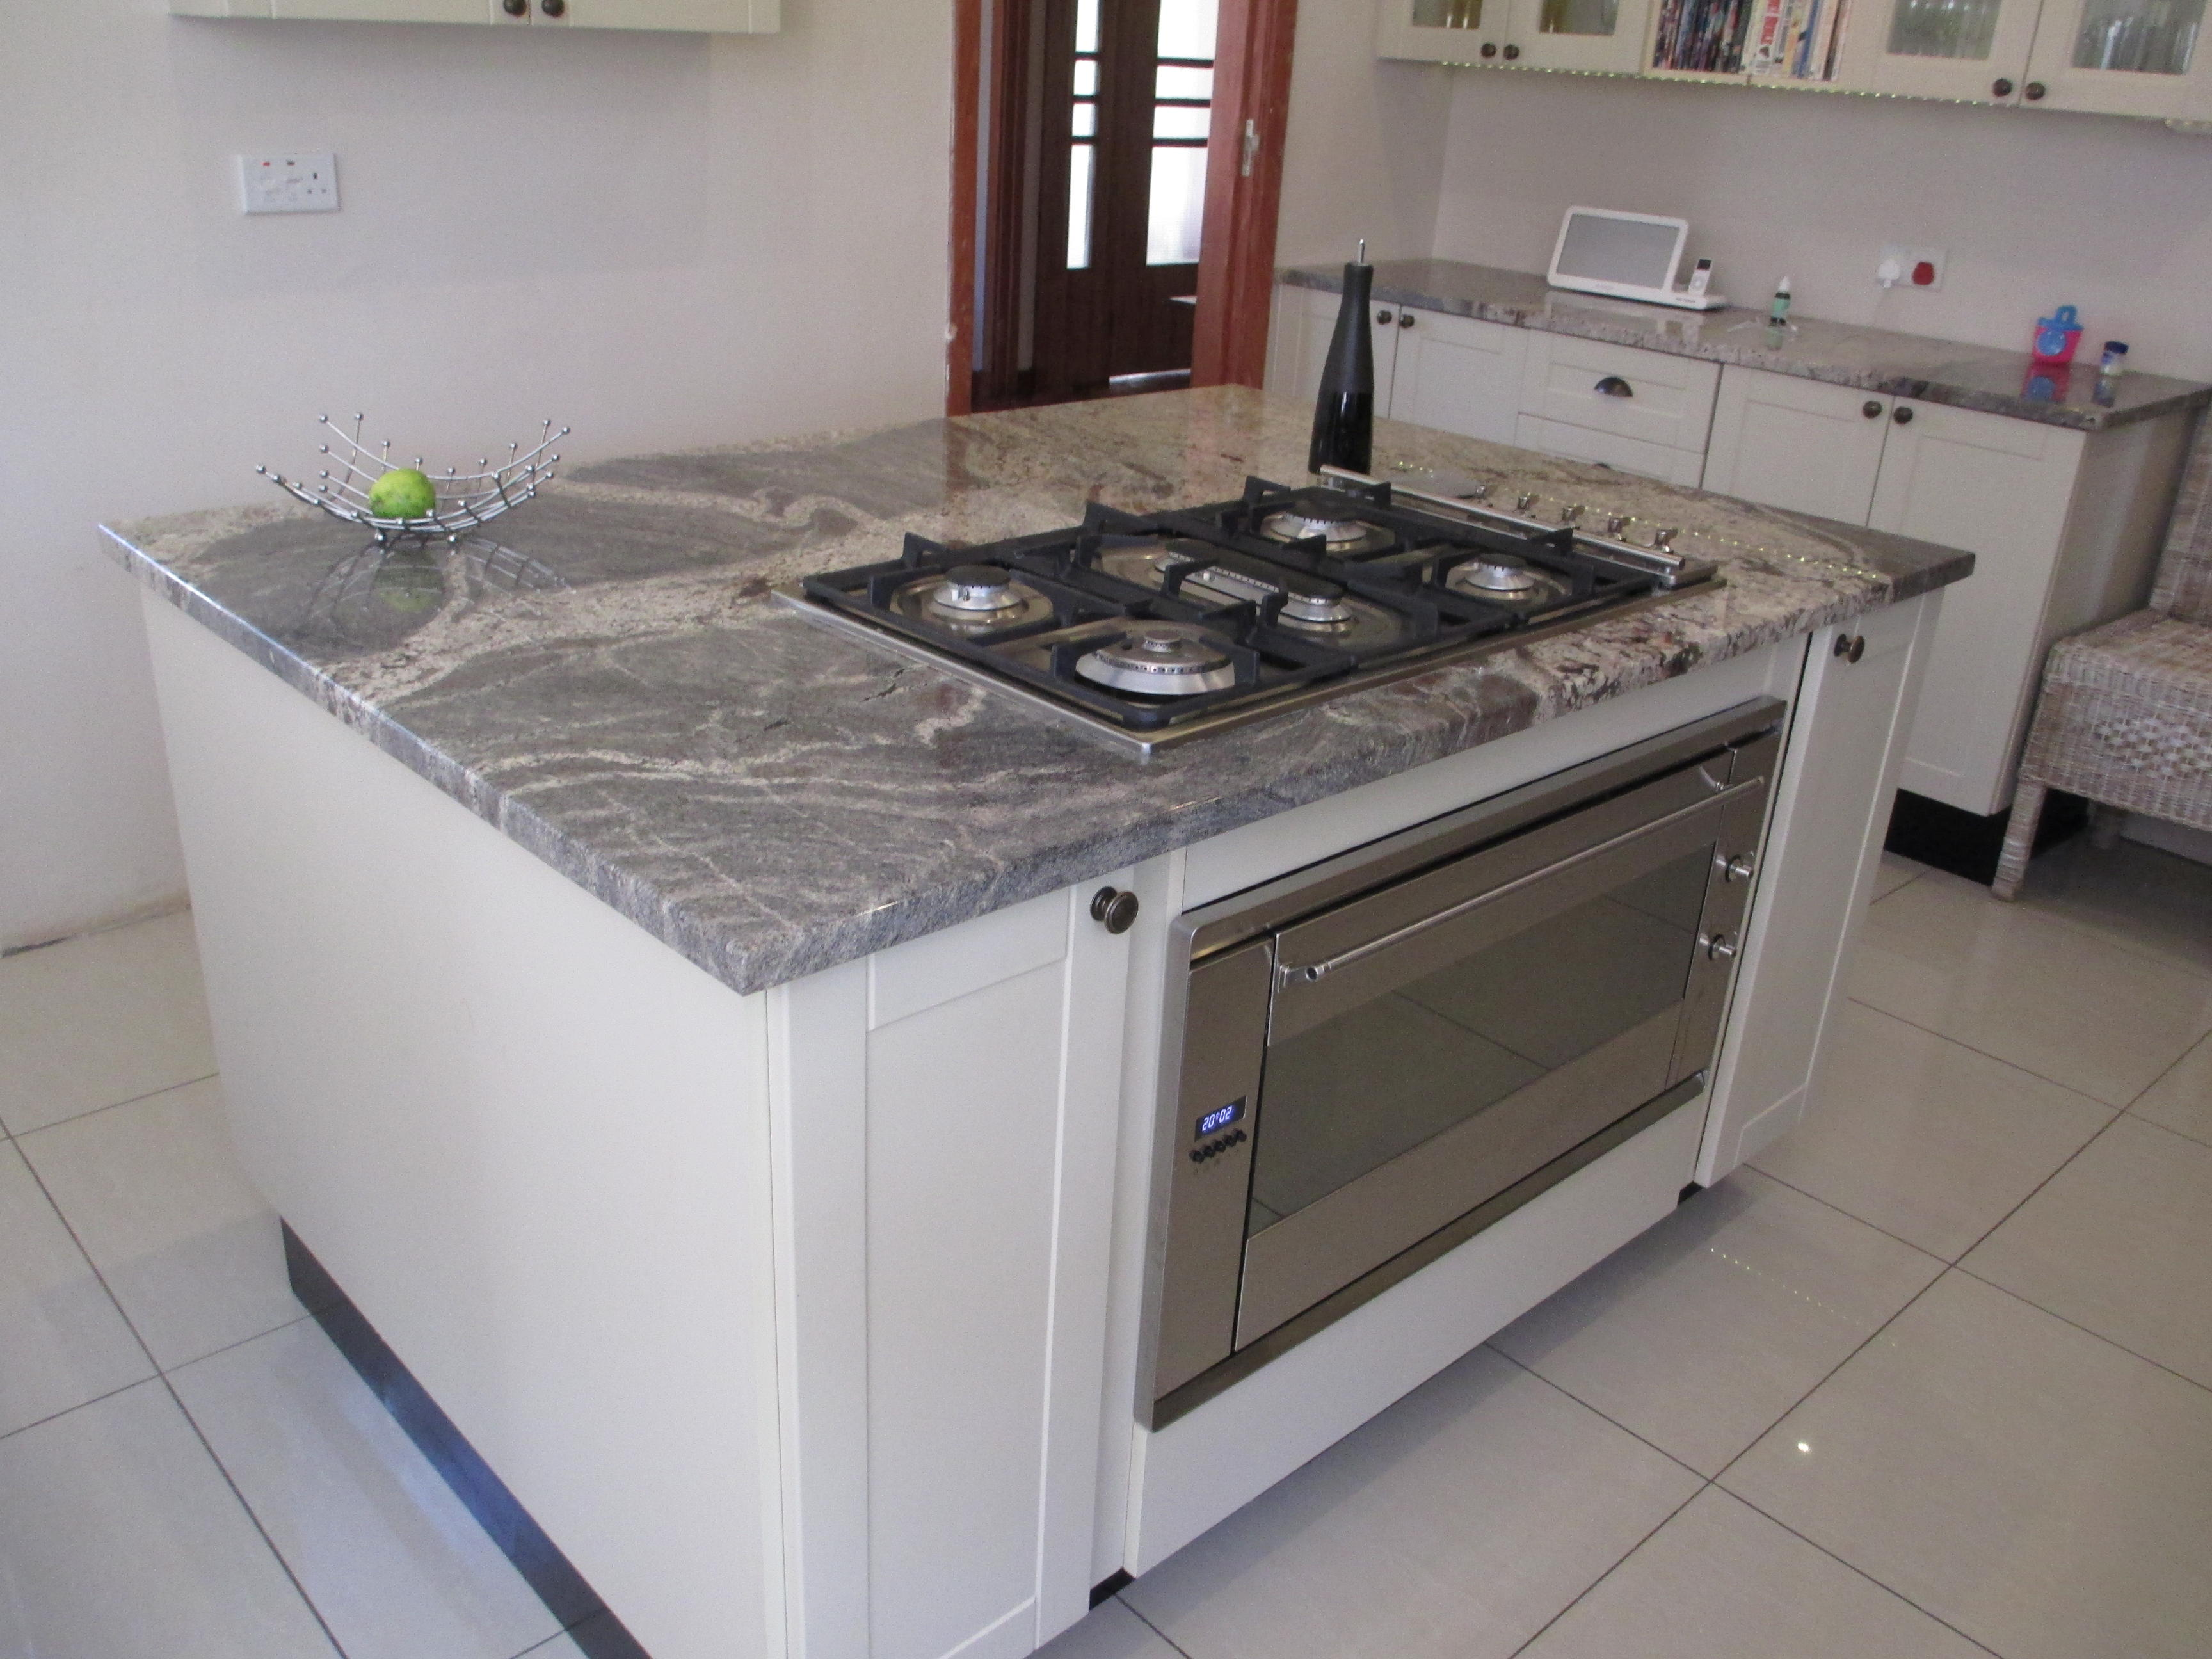 Cappuccino PVC Wrappe Kitchen  with Smeg appliances and push to open mechanisms